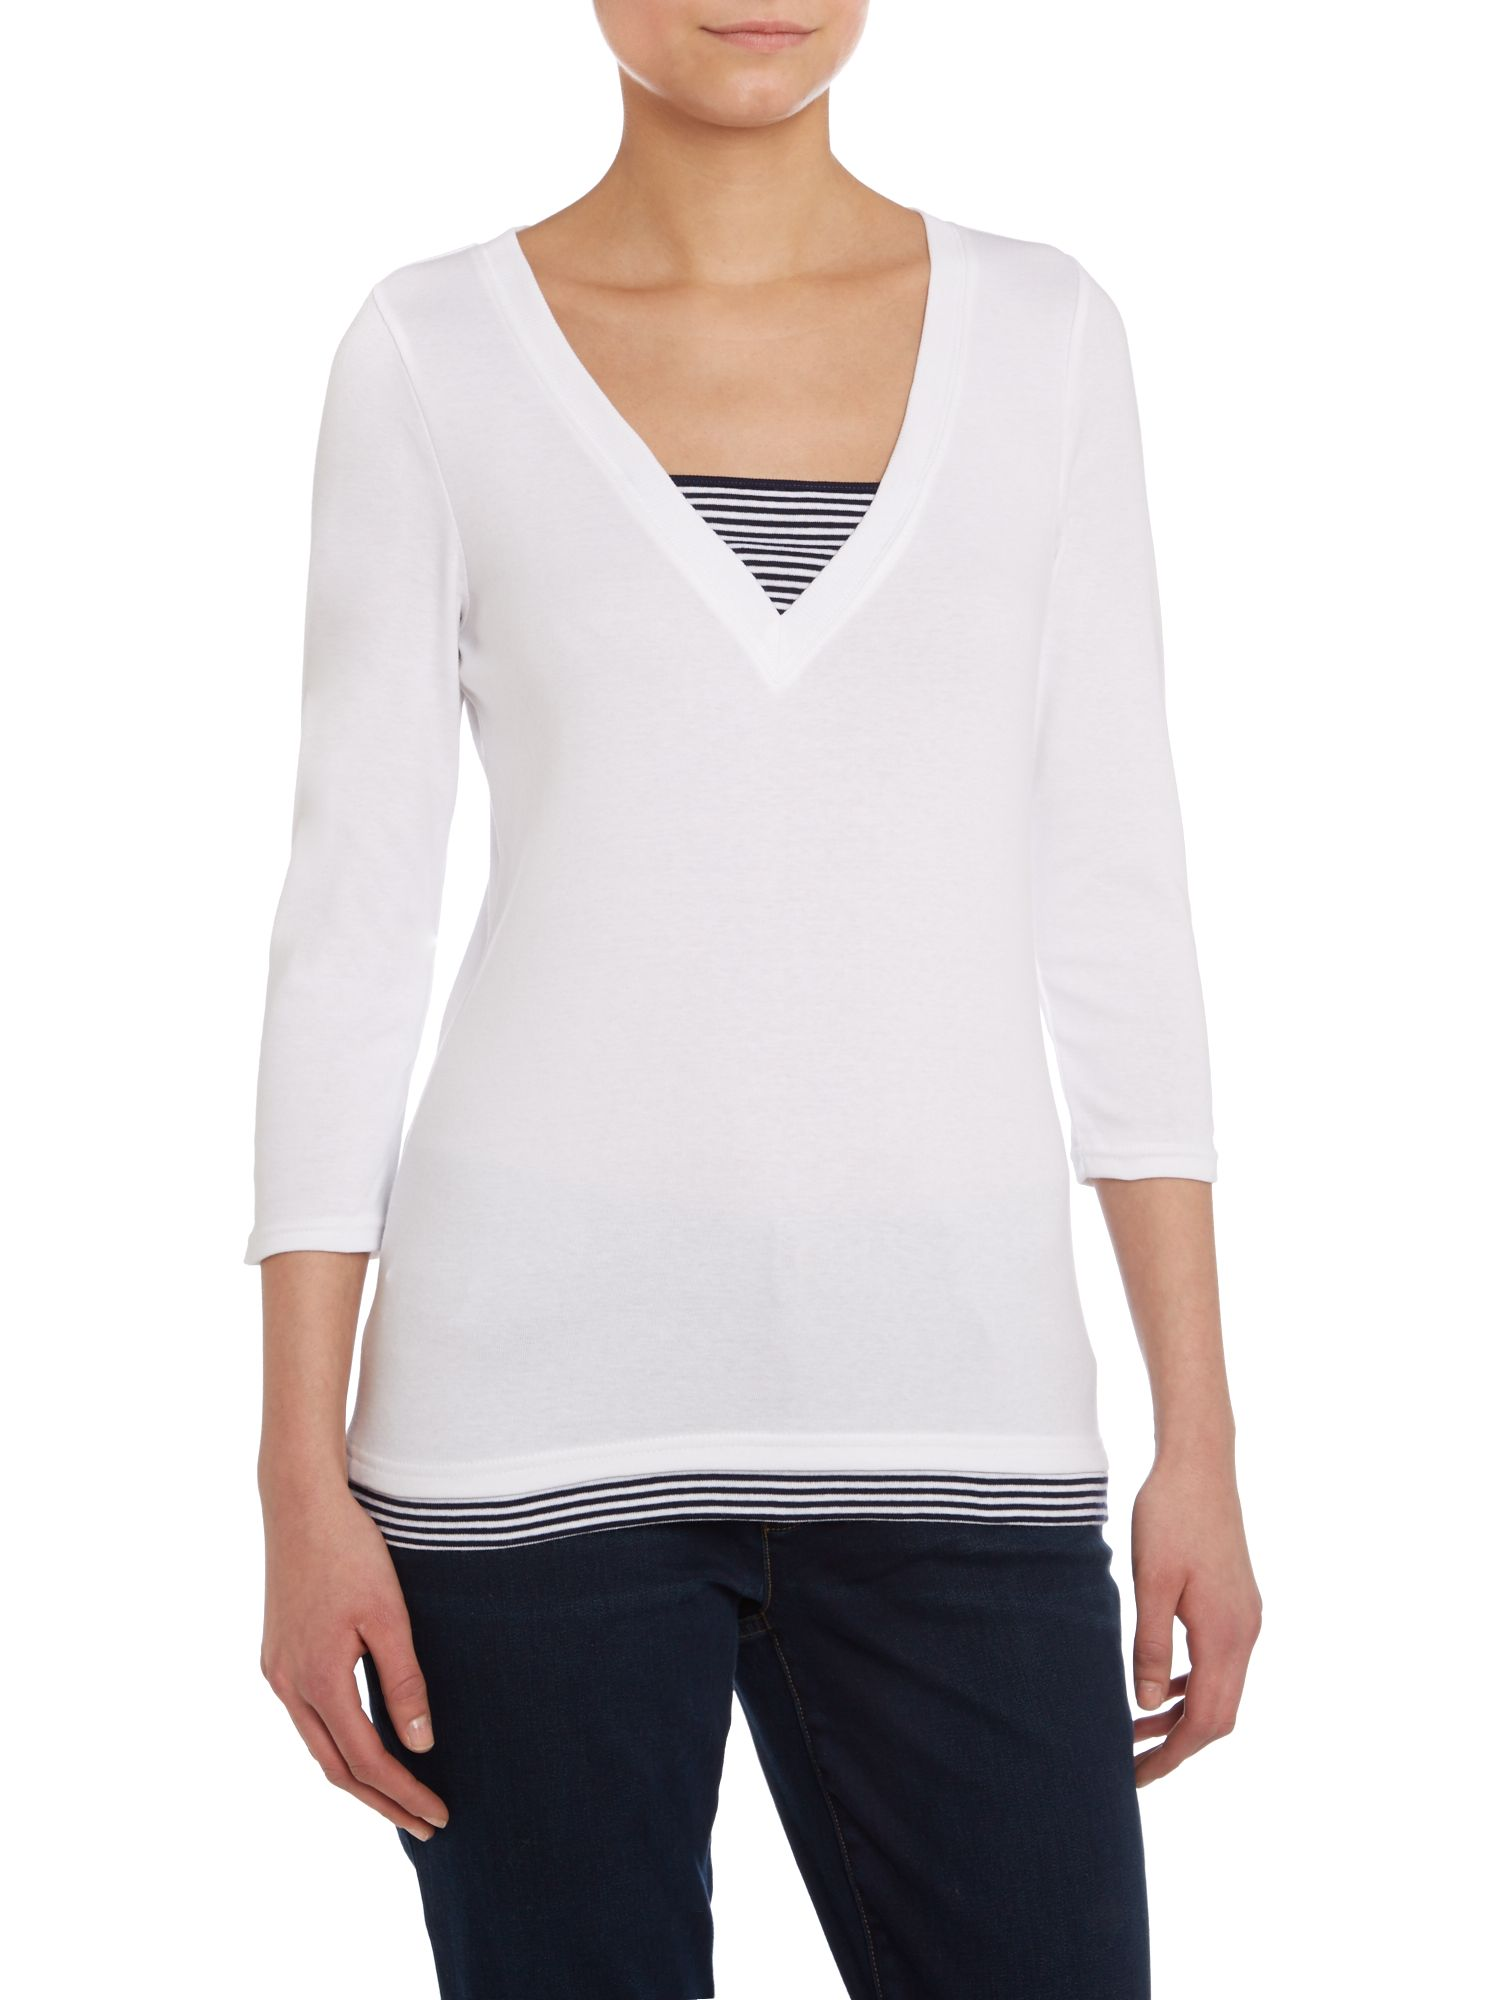 3/4 sleeved v neck with stripe insert